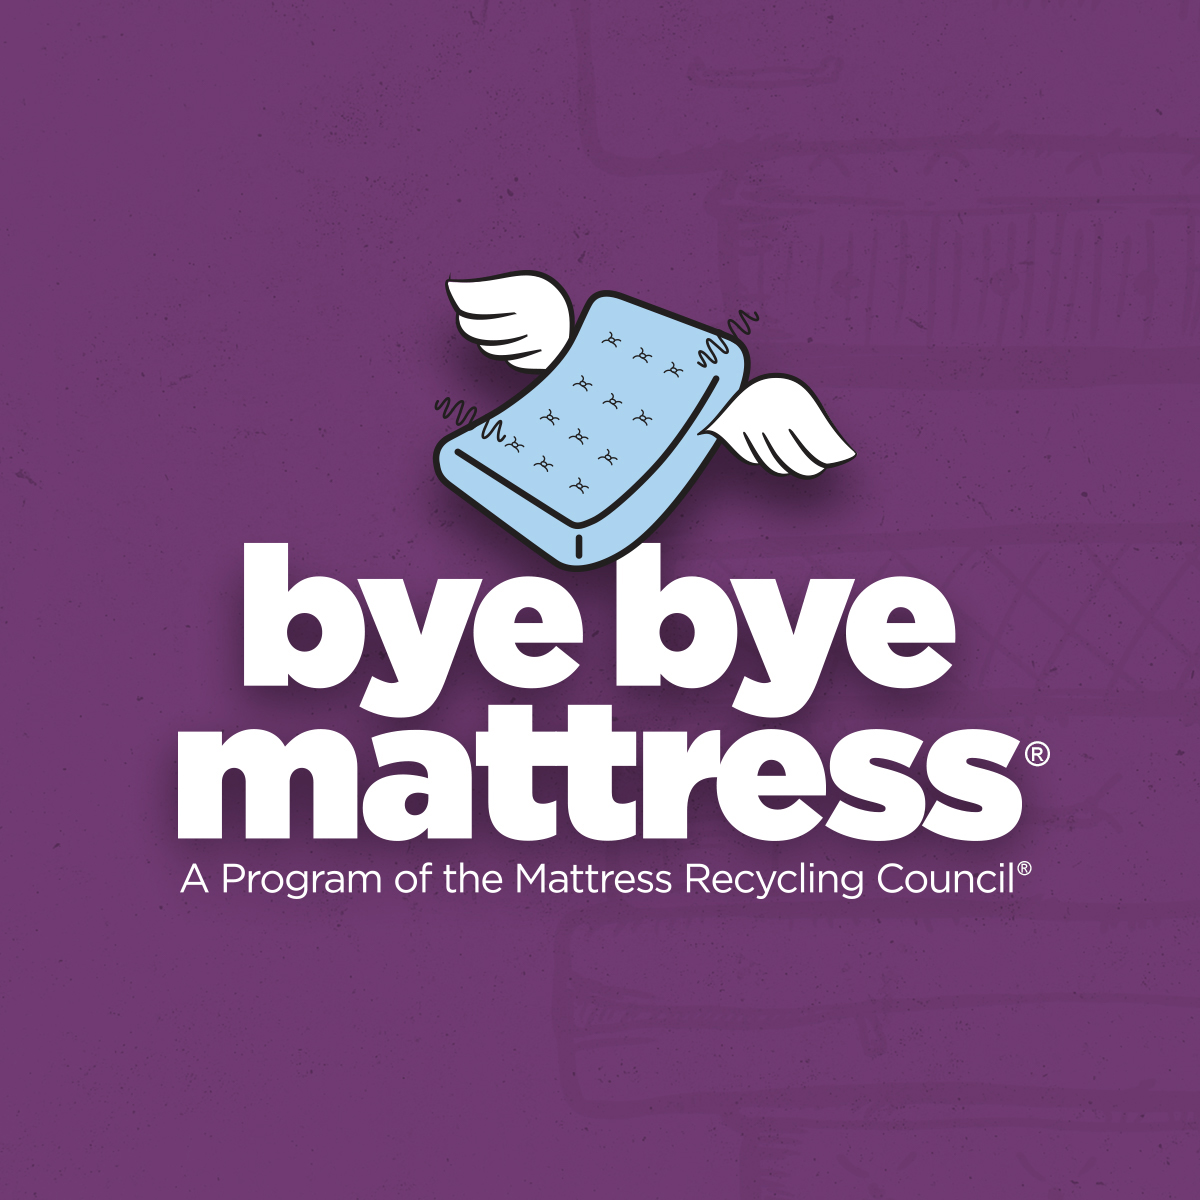 california bye bye mattress a program of the mattress recycling